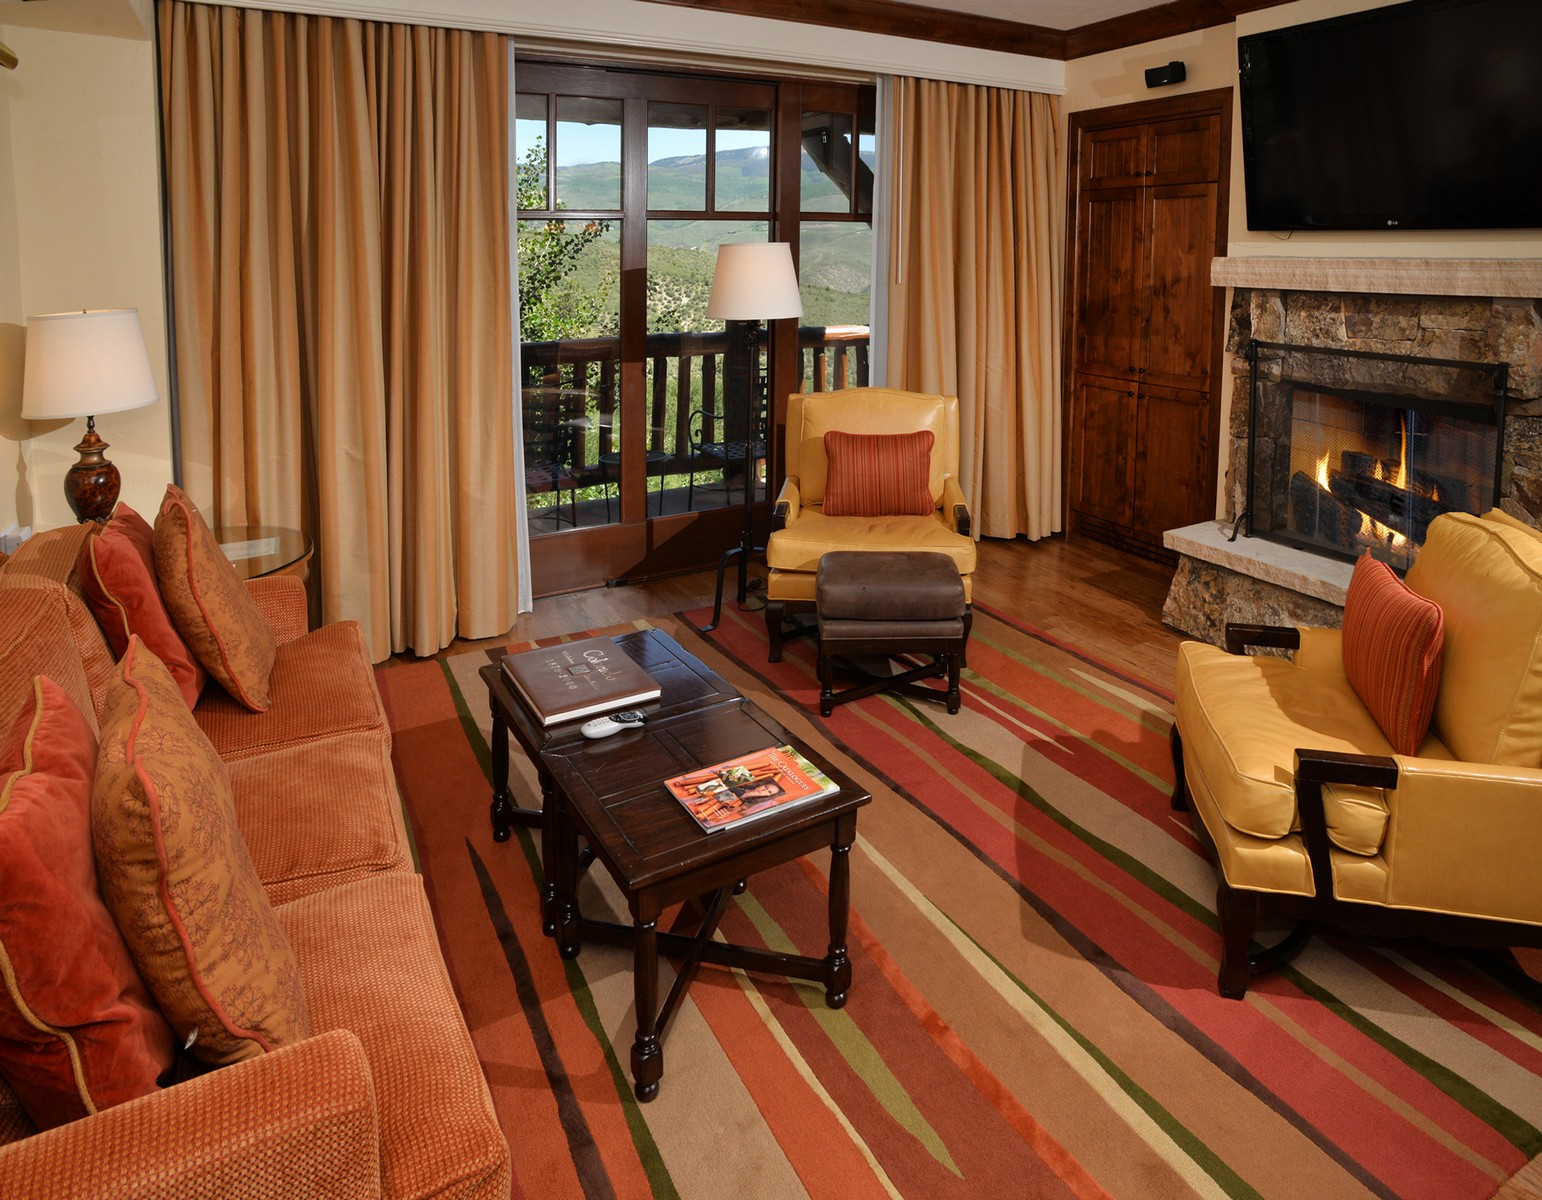 Property For Sale at Ski-in/ski-out in Bachelor Gulch